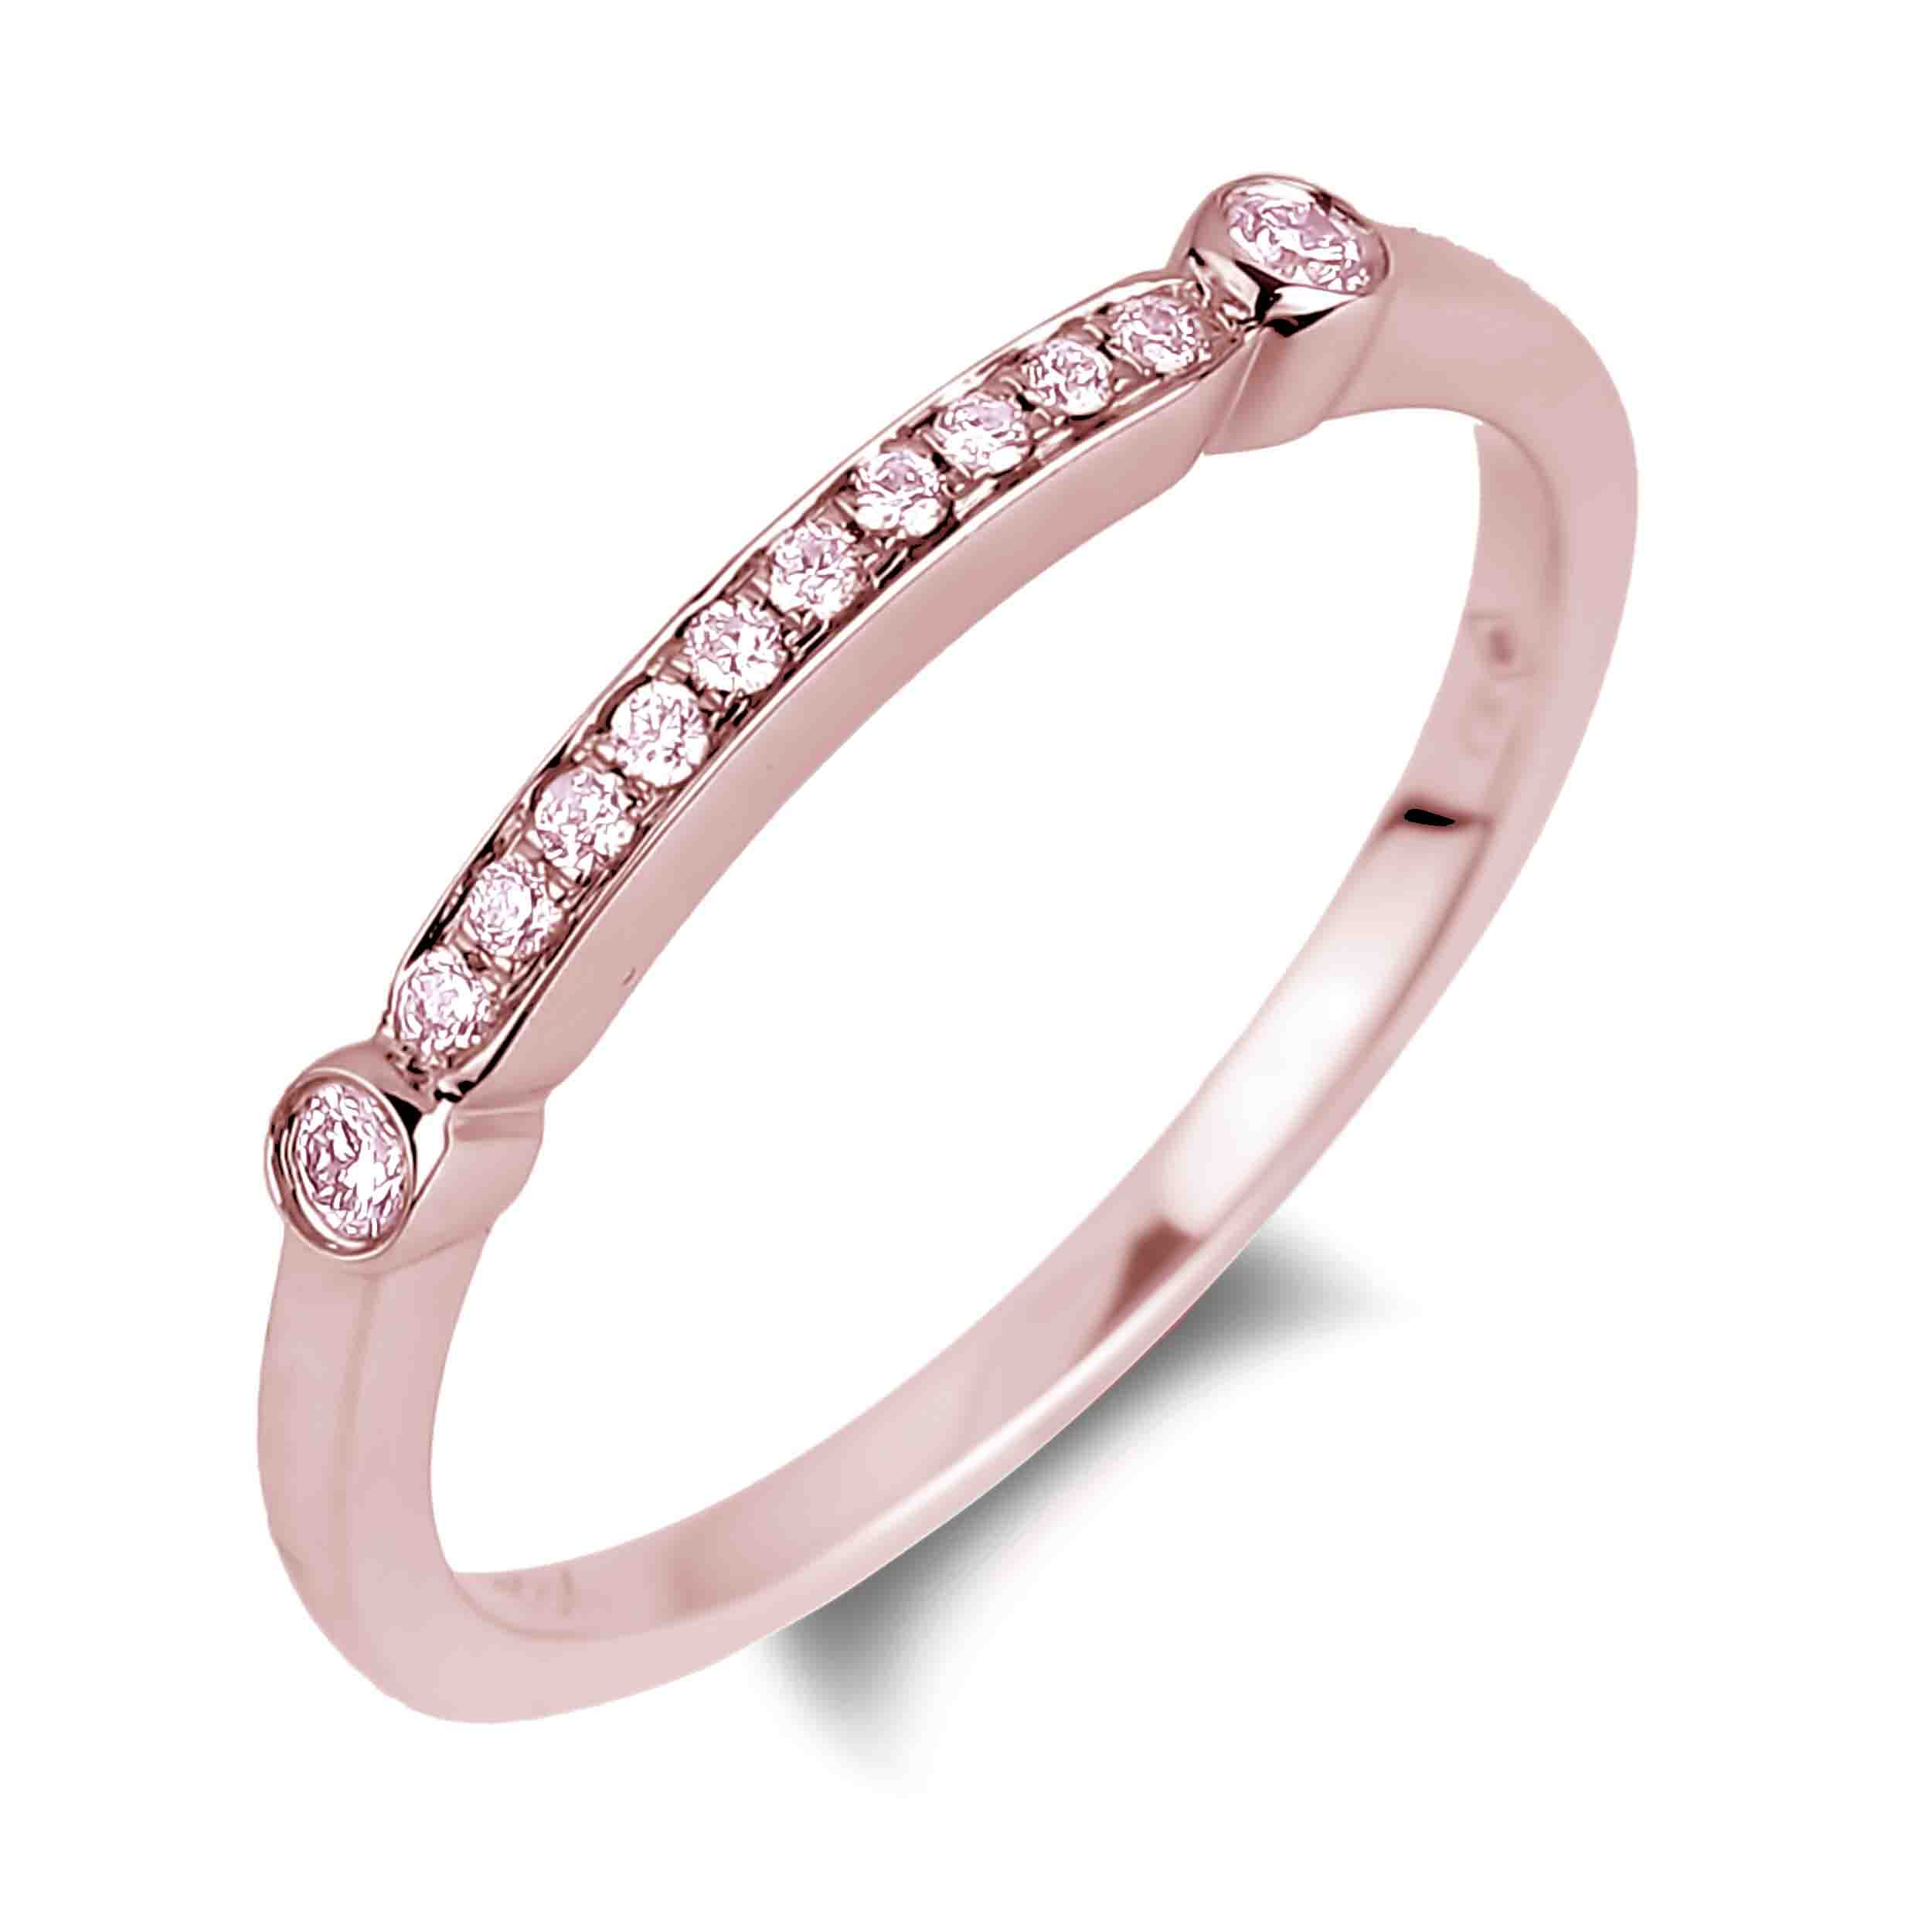 Fancy Pink Diamond Ladies Matching Wedding Band In Most Up To Date Certified Diamond Anniversary Bands In Rose Gold (Gallery 7 of 25)